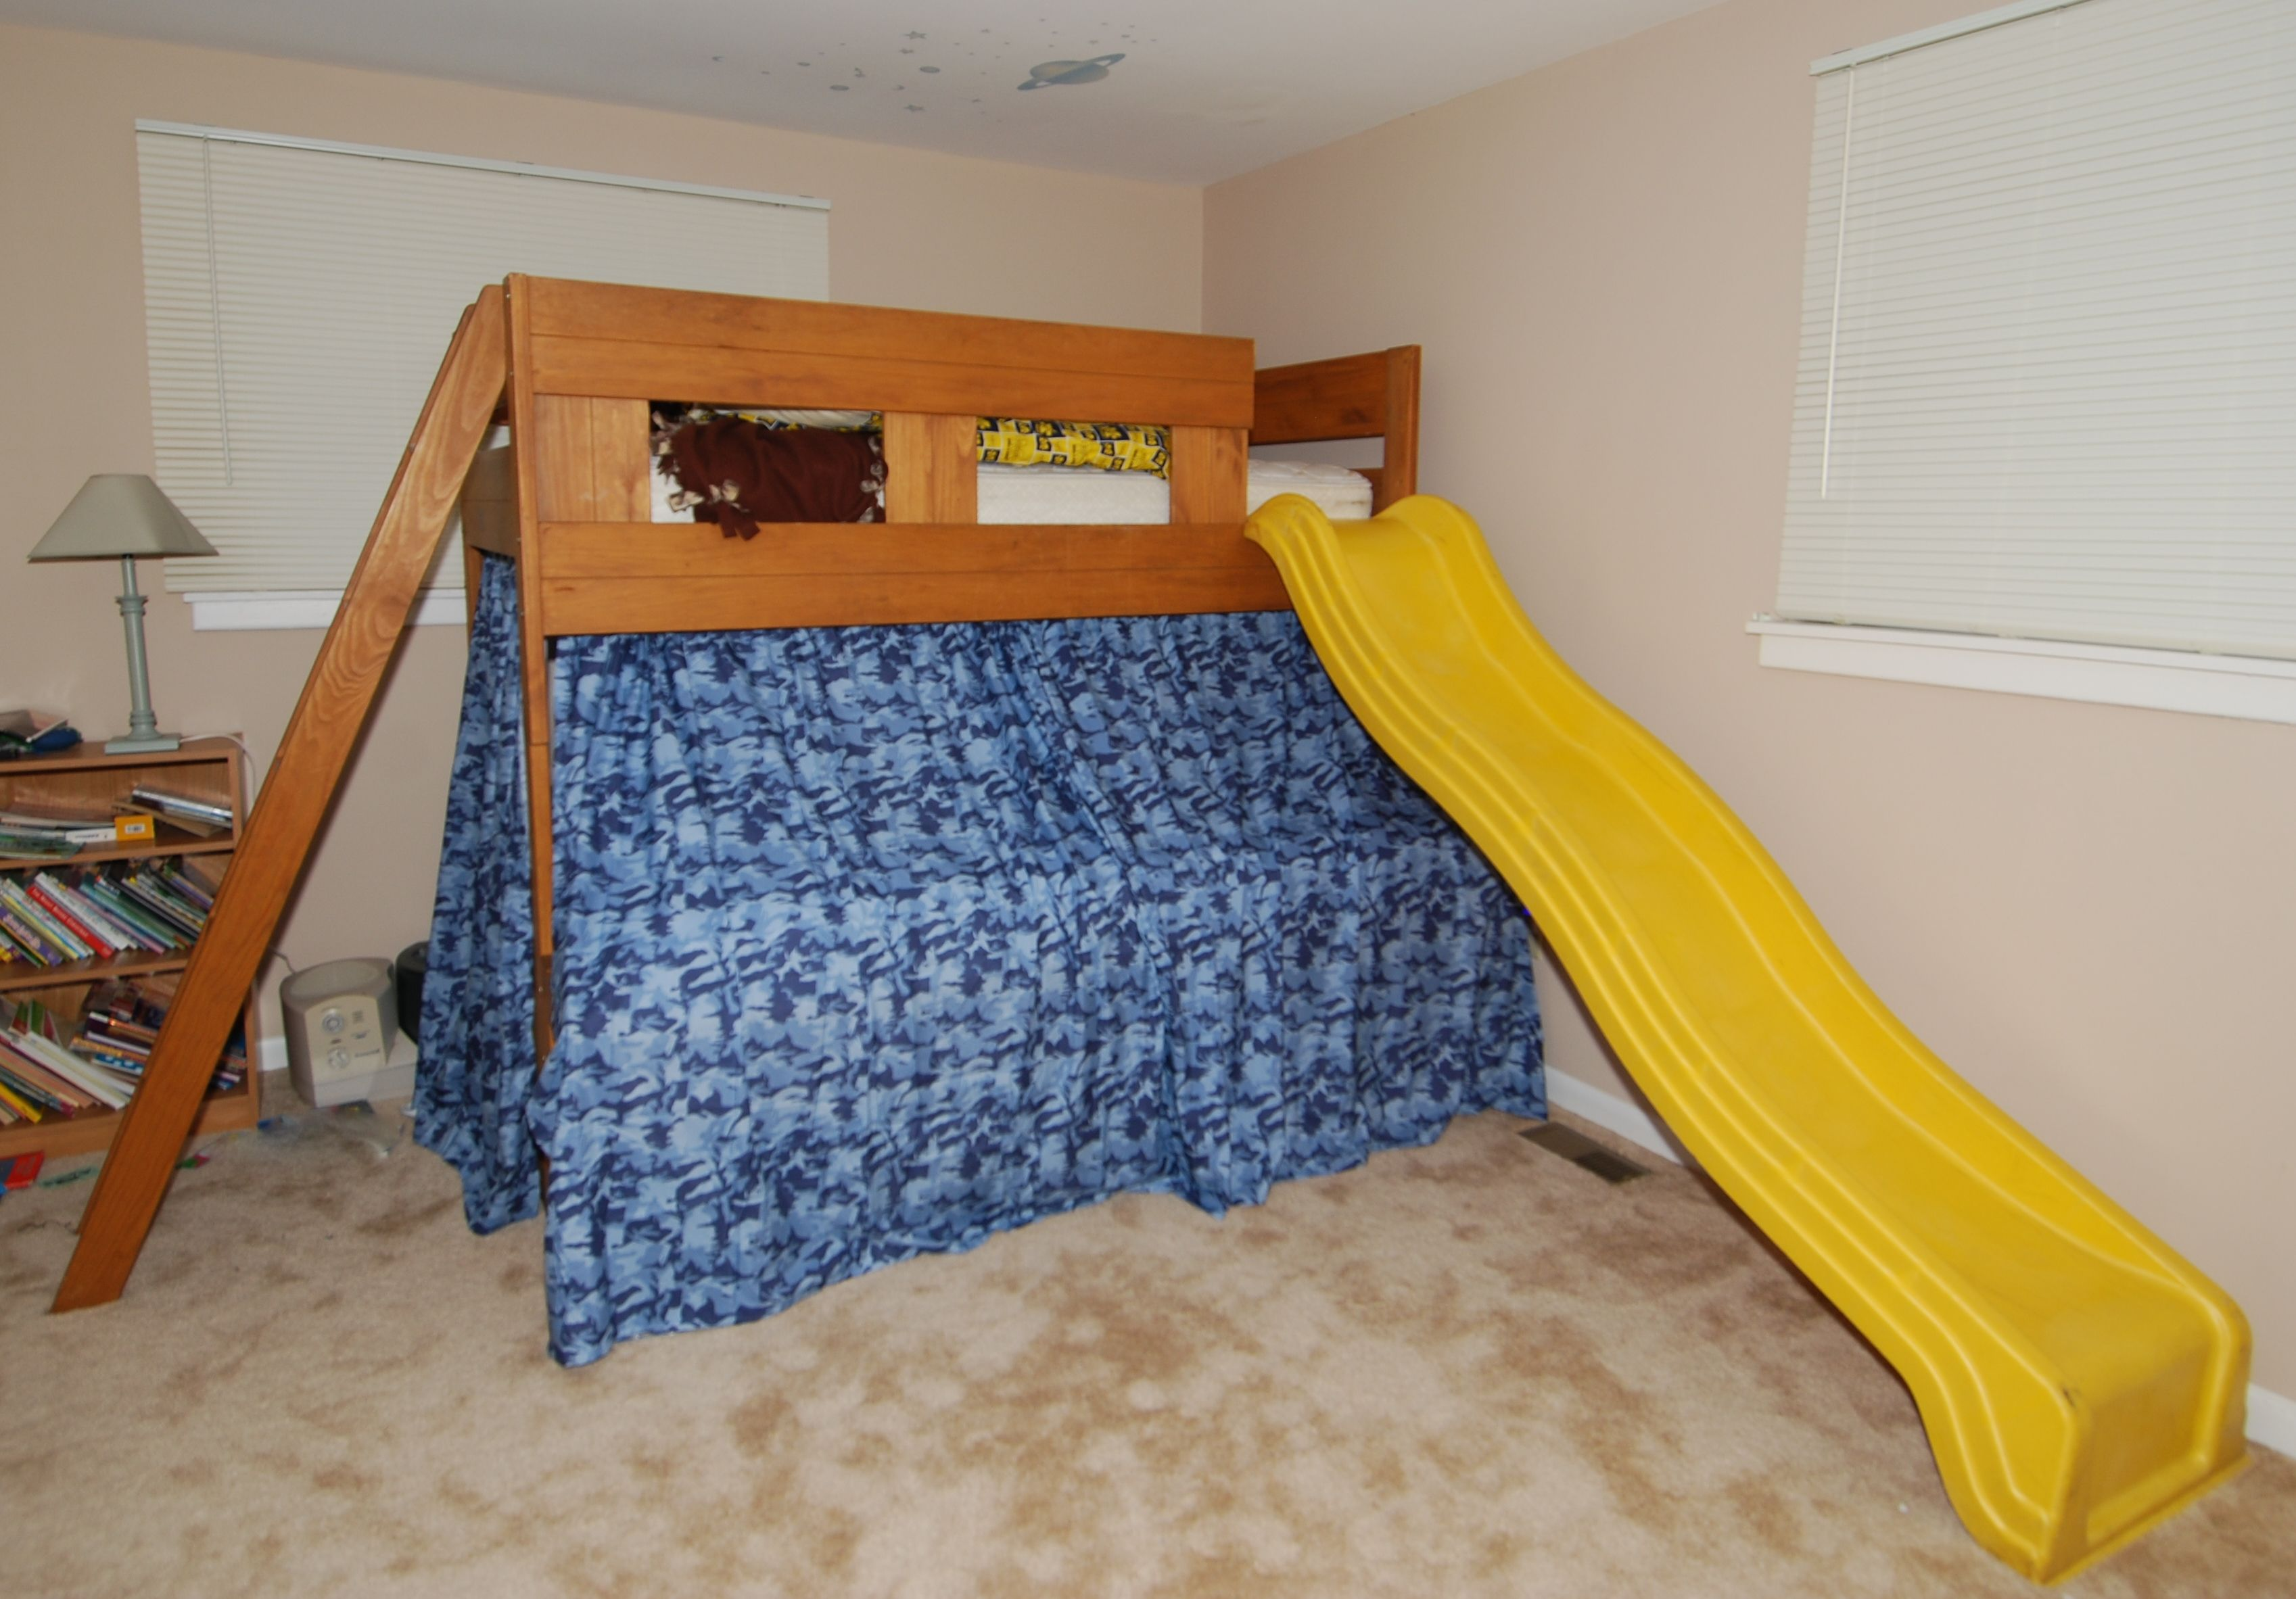 Kids metal loft bed with slide  Took regular bunkbed and added a slide u curtains for a tent to make